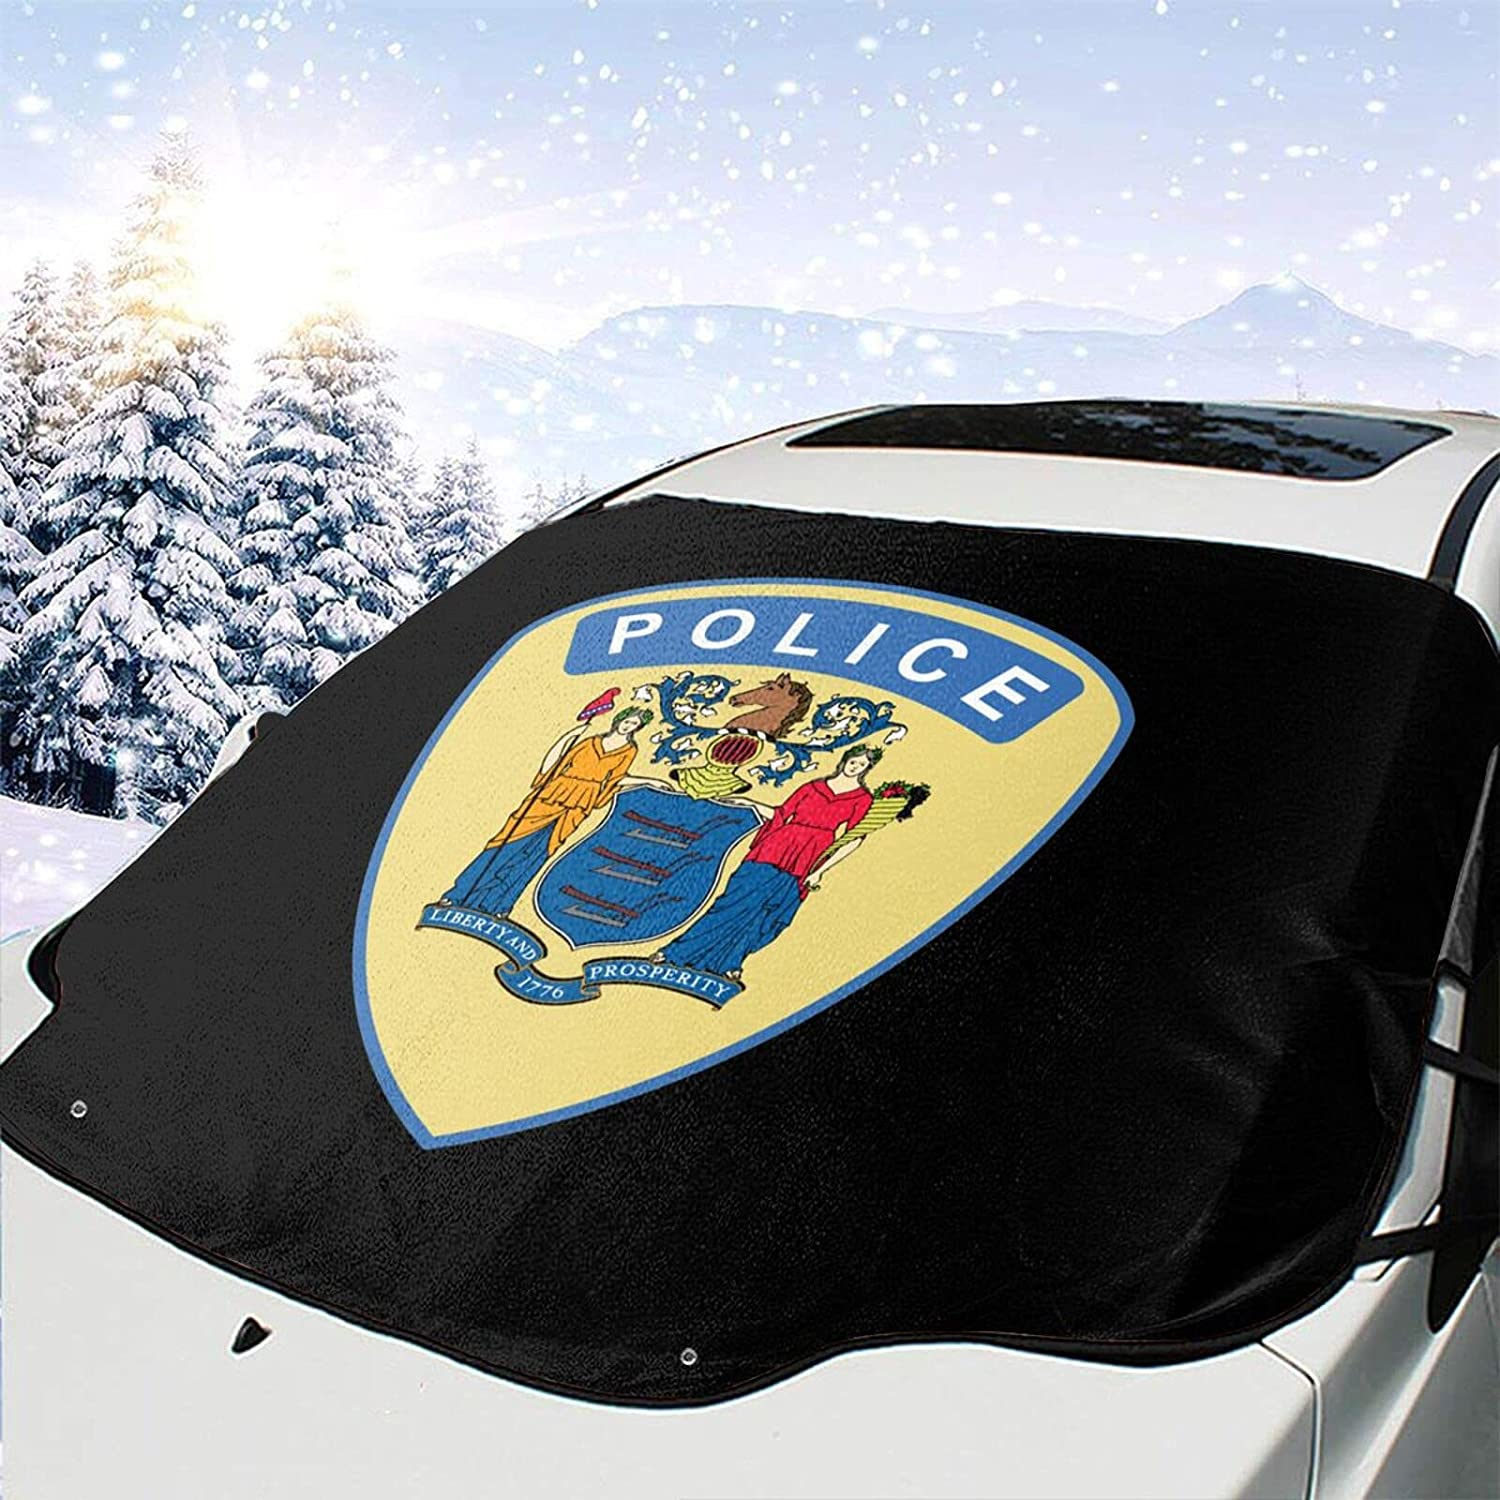 Flag of New Jersey Police Windshield Wipe Snow Cover Removal Ice Bargain sale Popular product